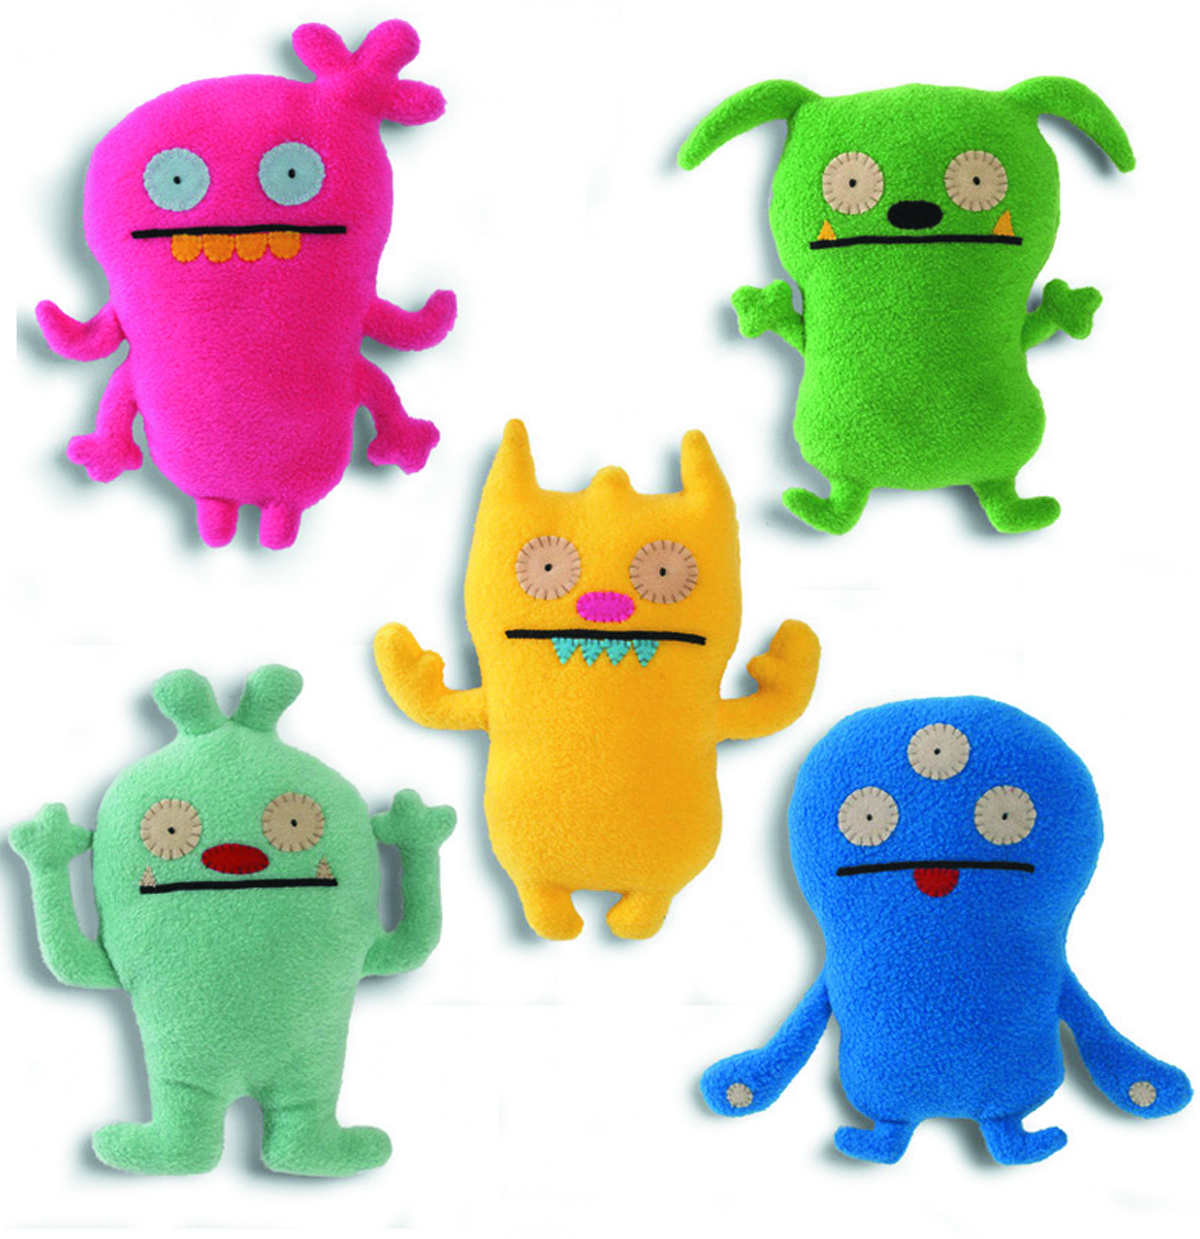 UGLYDOLL 2013 INTRO LITTLE 7-IN PLUSH ASST